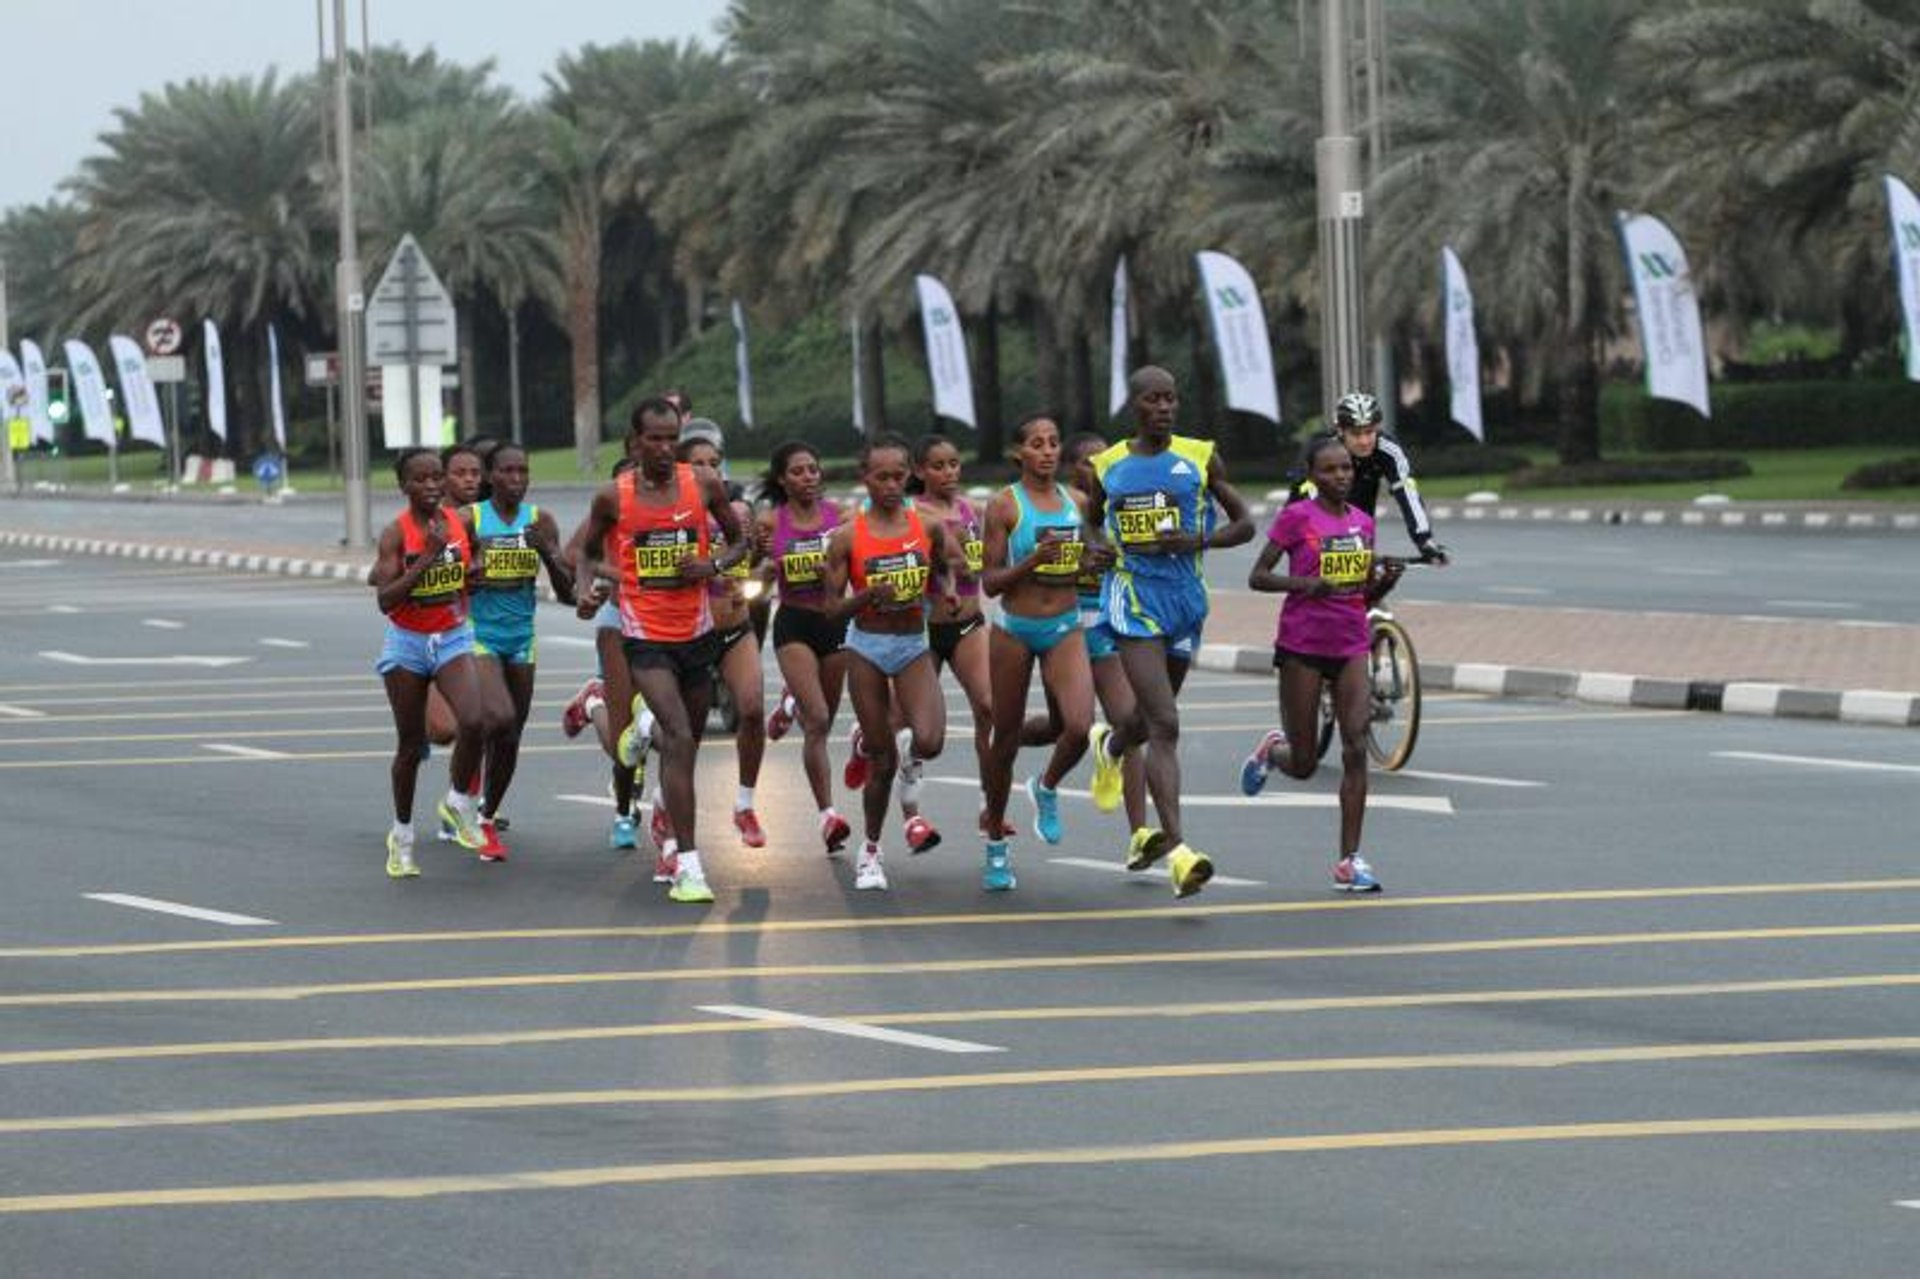 Standart Chartered Dubai Marathon in Dubai 2020 - Best Time